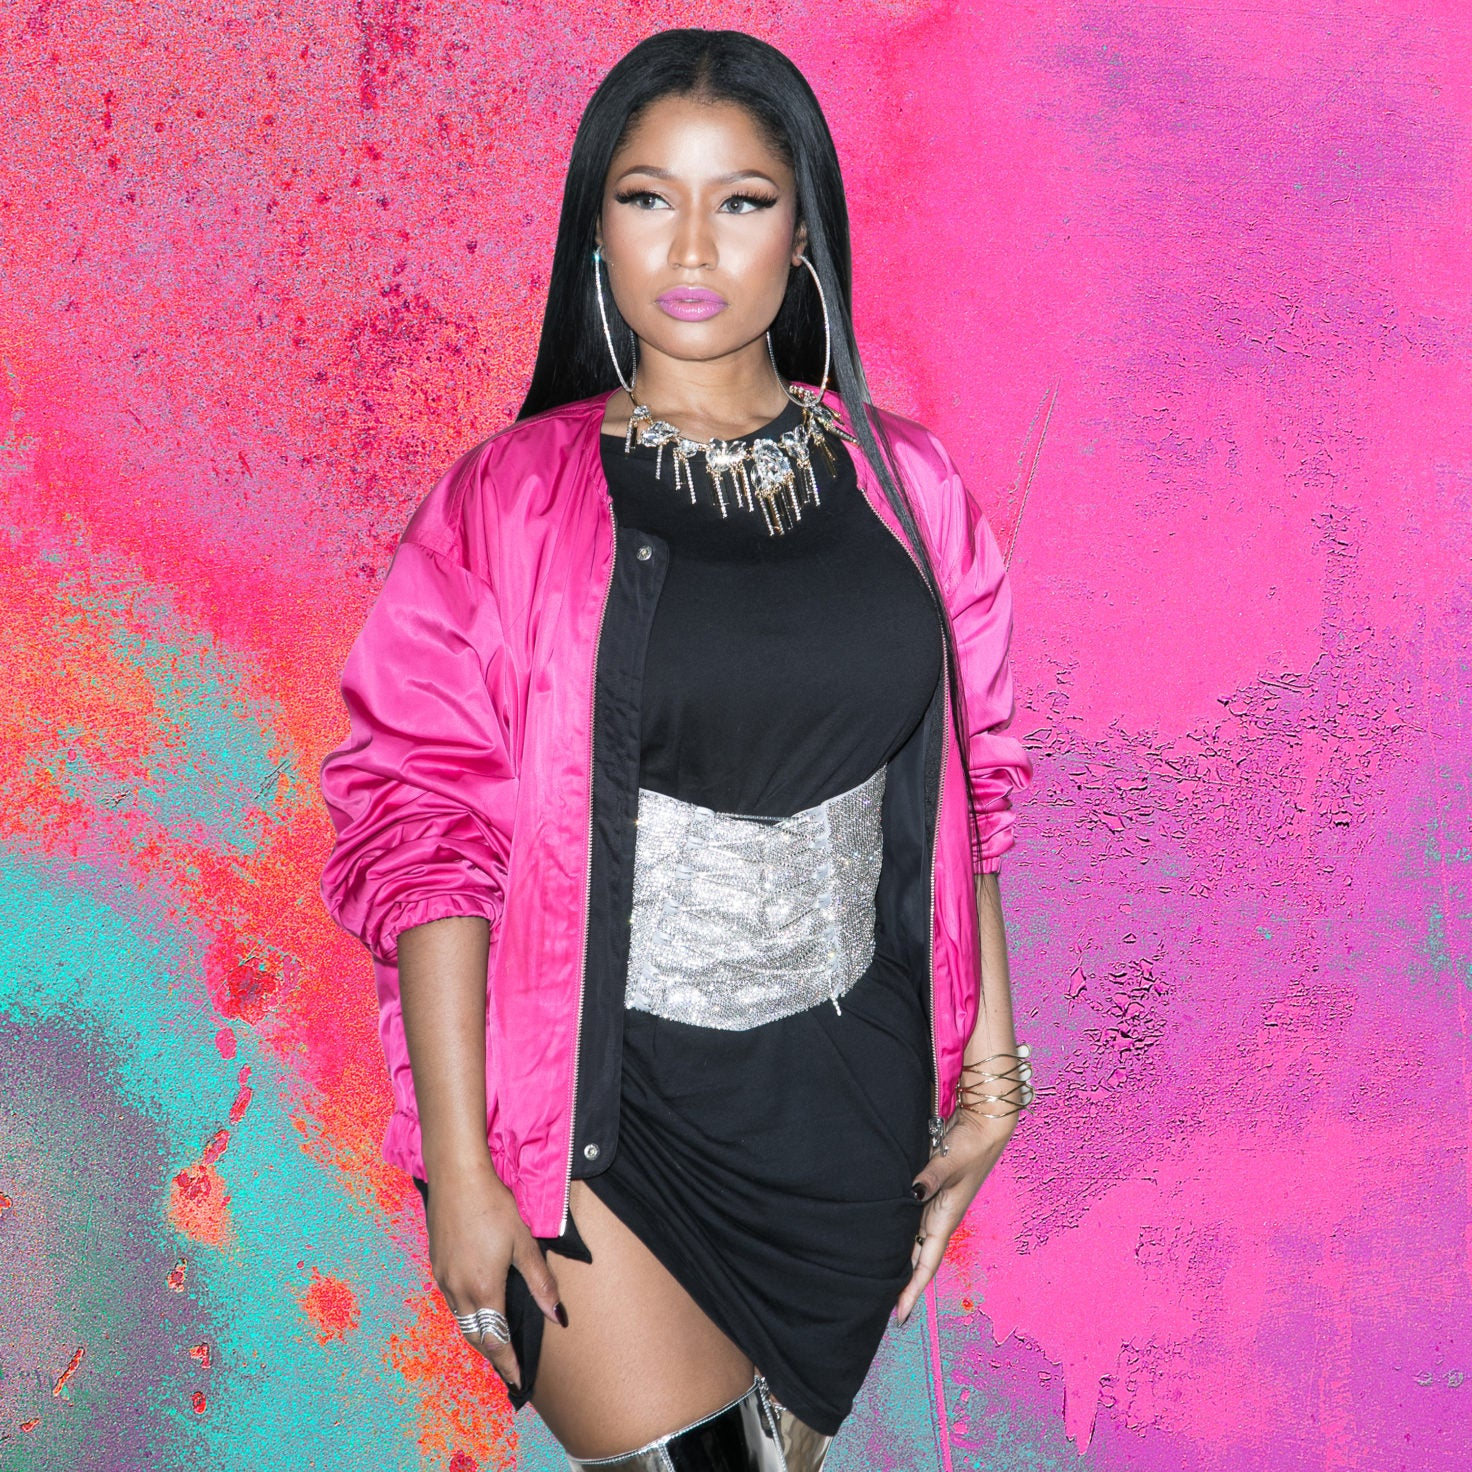 #StudentOfTheGame: Nicki Minaj Has Awarded Over $25,000 In College Money To Dozens Of Fans And She's Not Done Yet